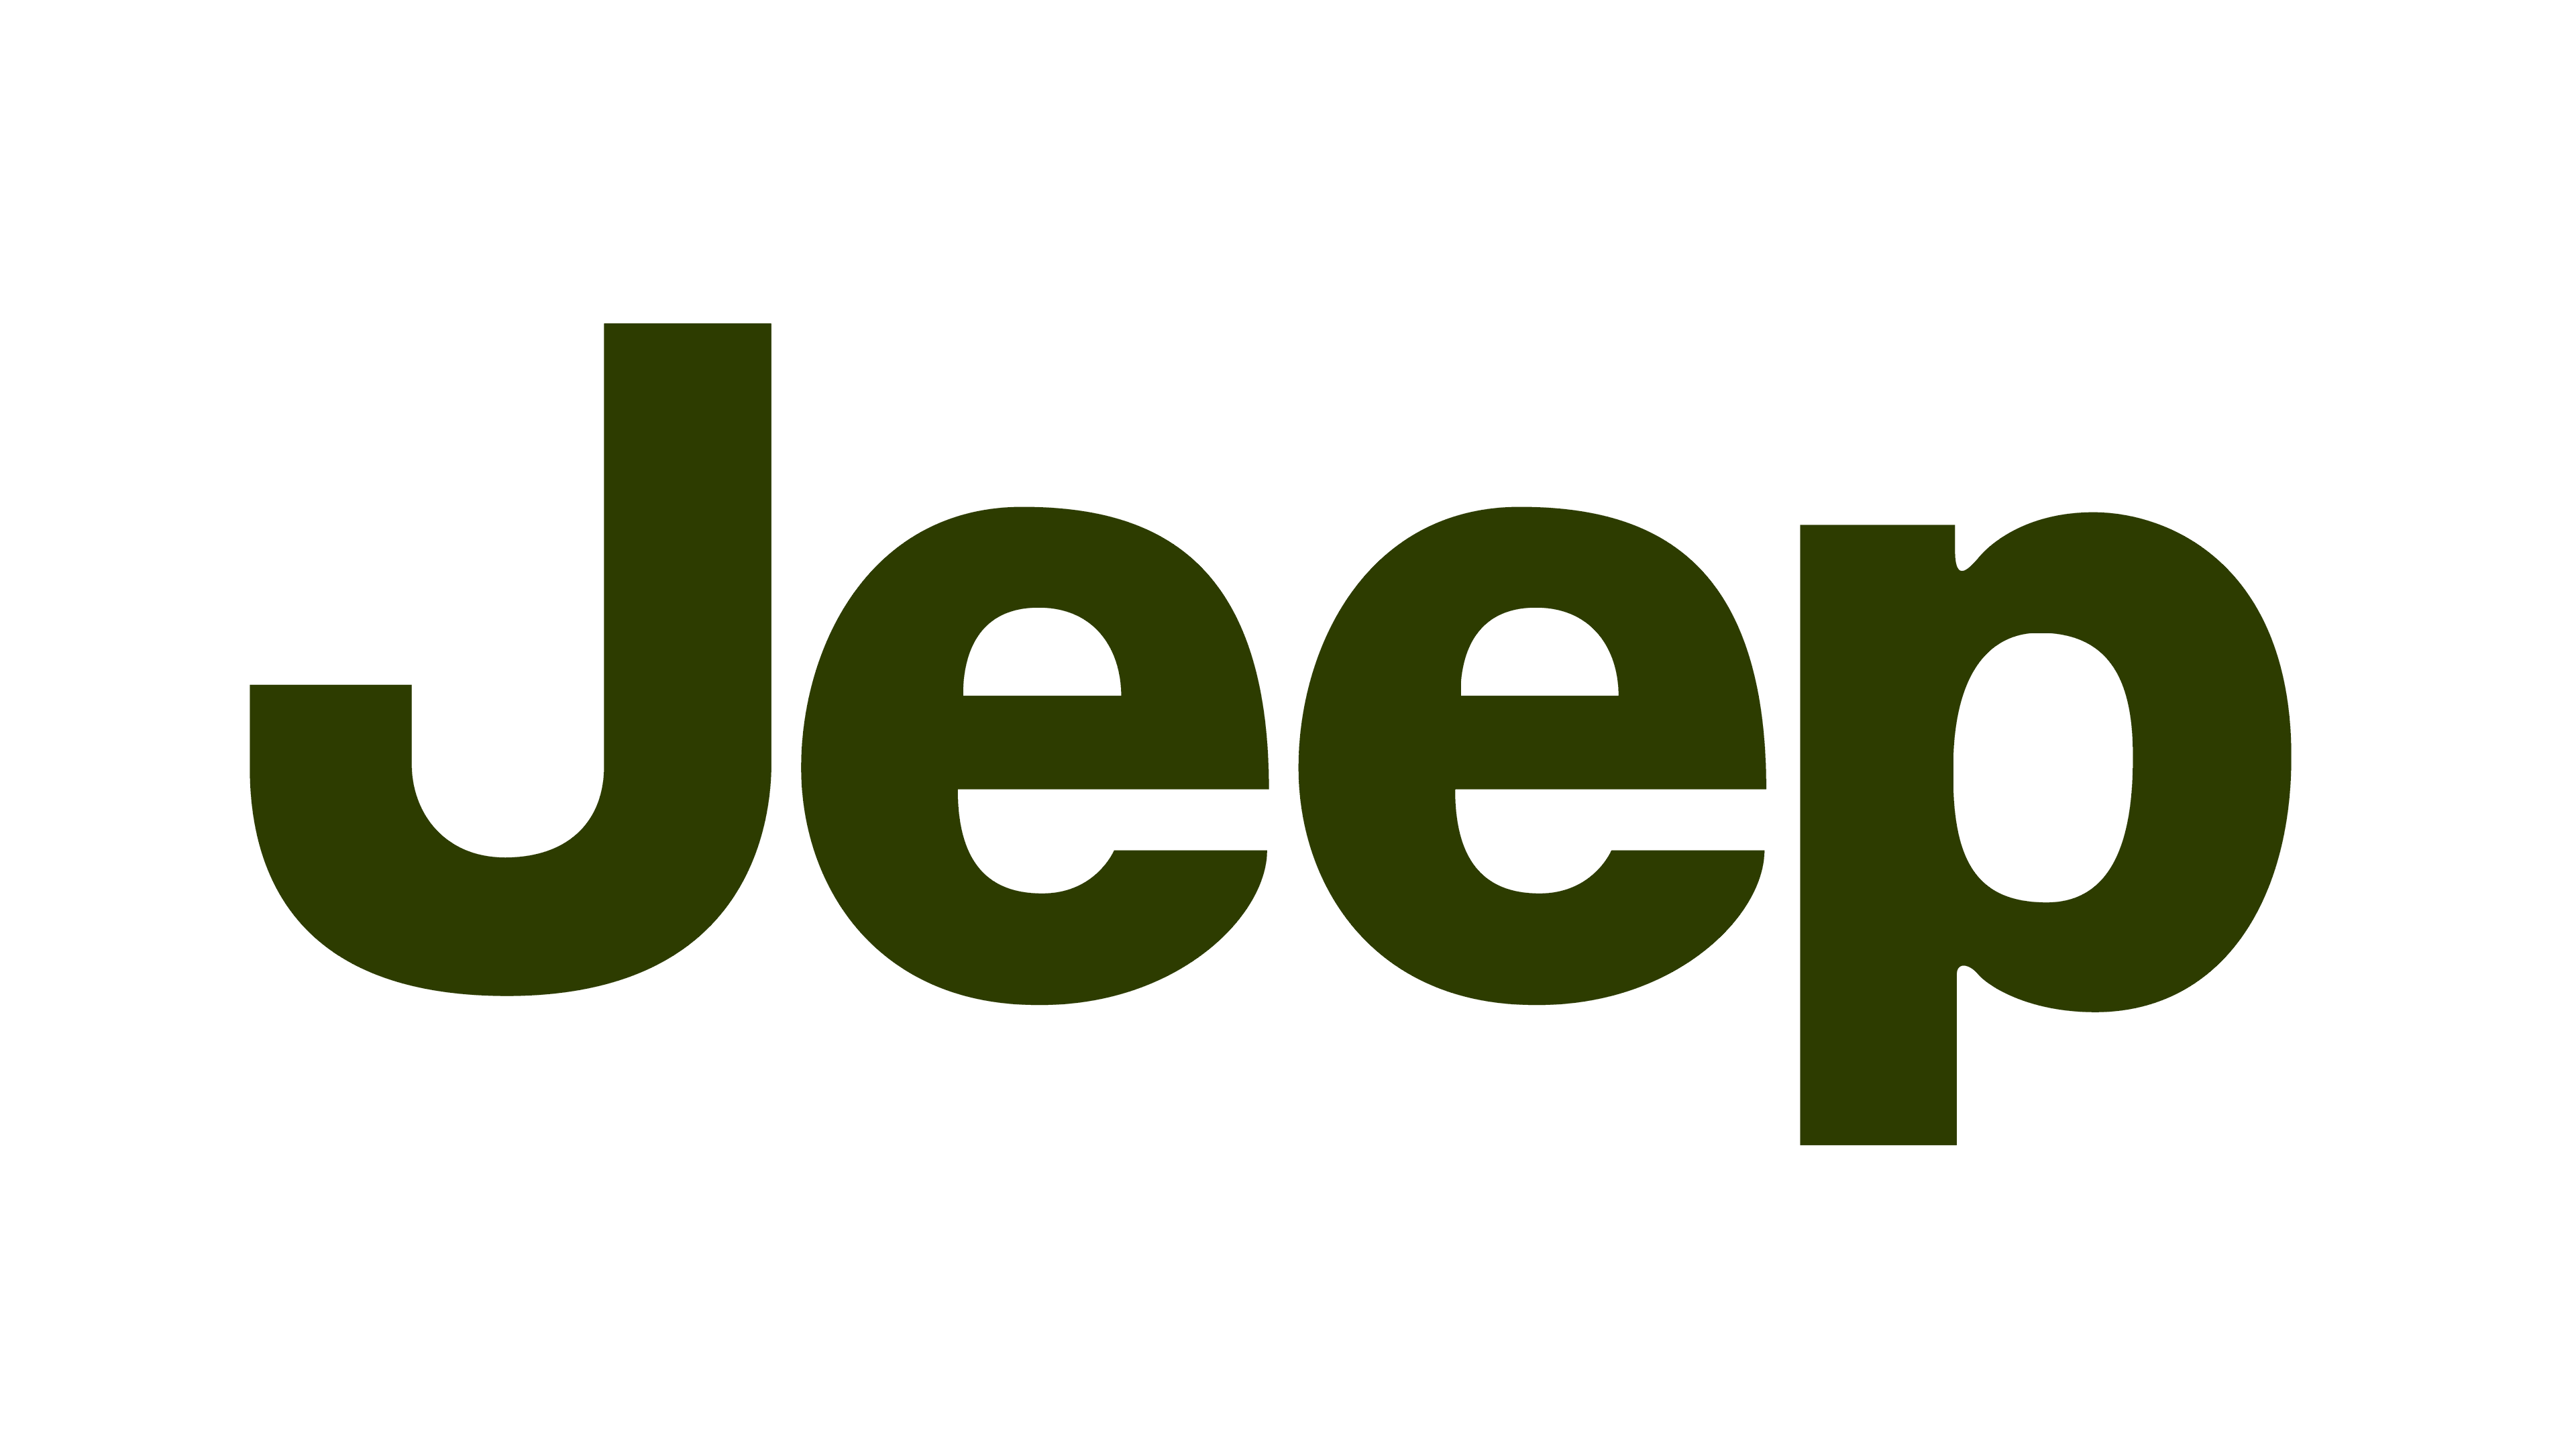 Jeep grill logo png. Hd meaning information carlogos